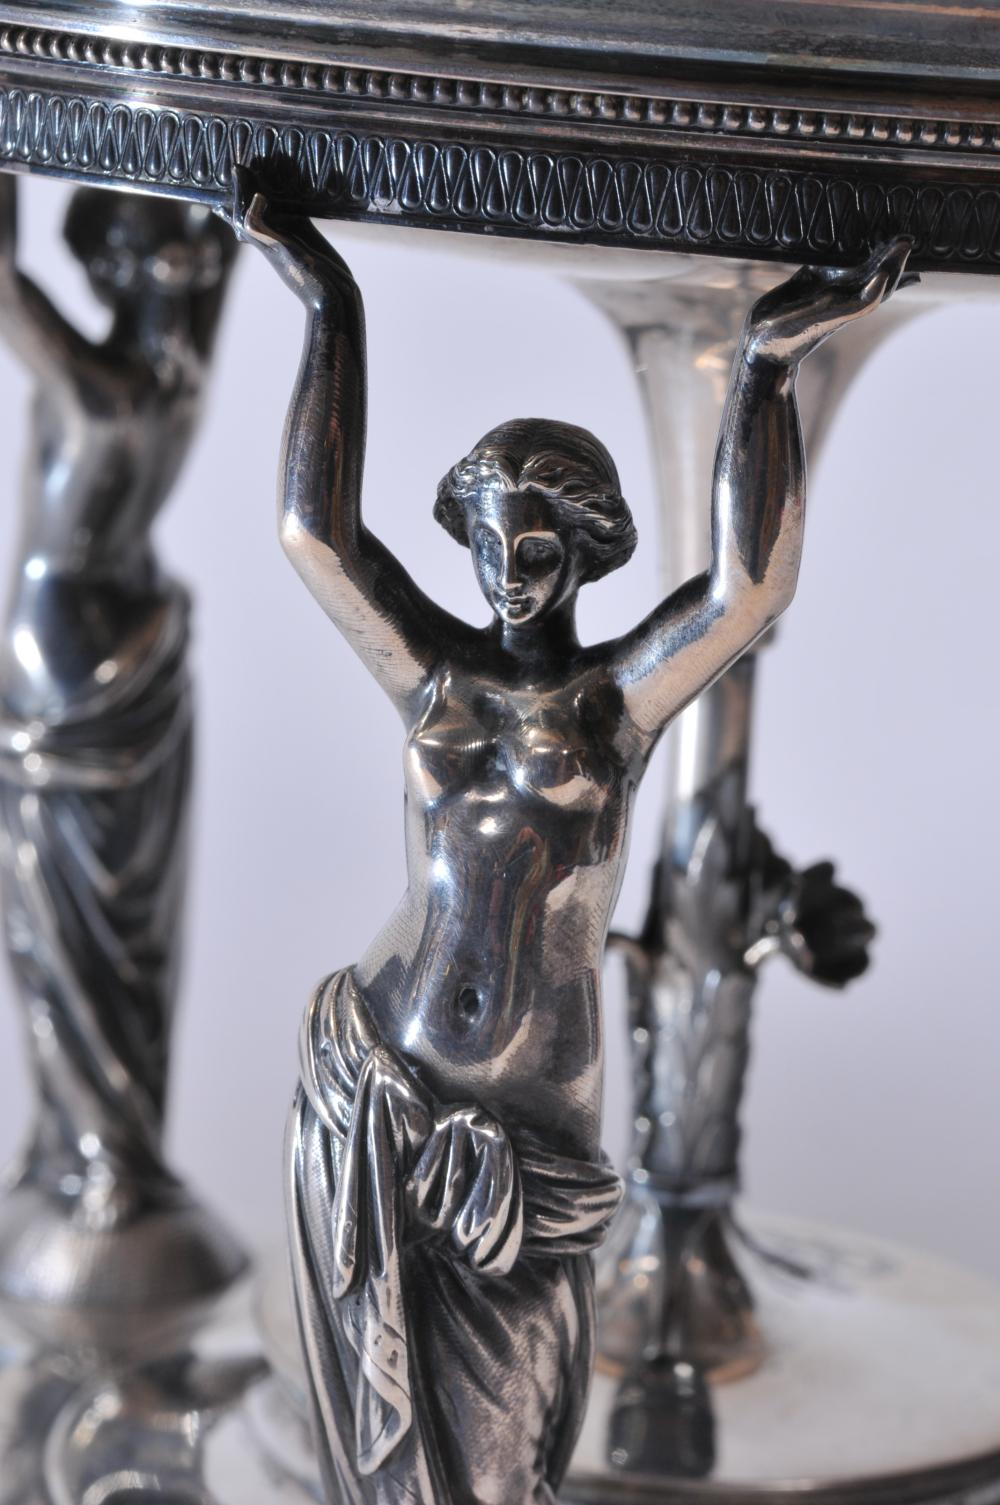 Lot 63: Impressive Gorham Sterling Silver Victorian figural support tazza. Three full figure Classical women act as supports for the round dish top with chain decorated border and engraved medallion center. Central support with leaf and flower decoration. Da